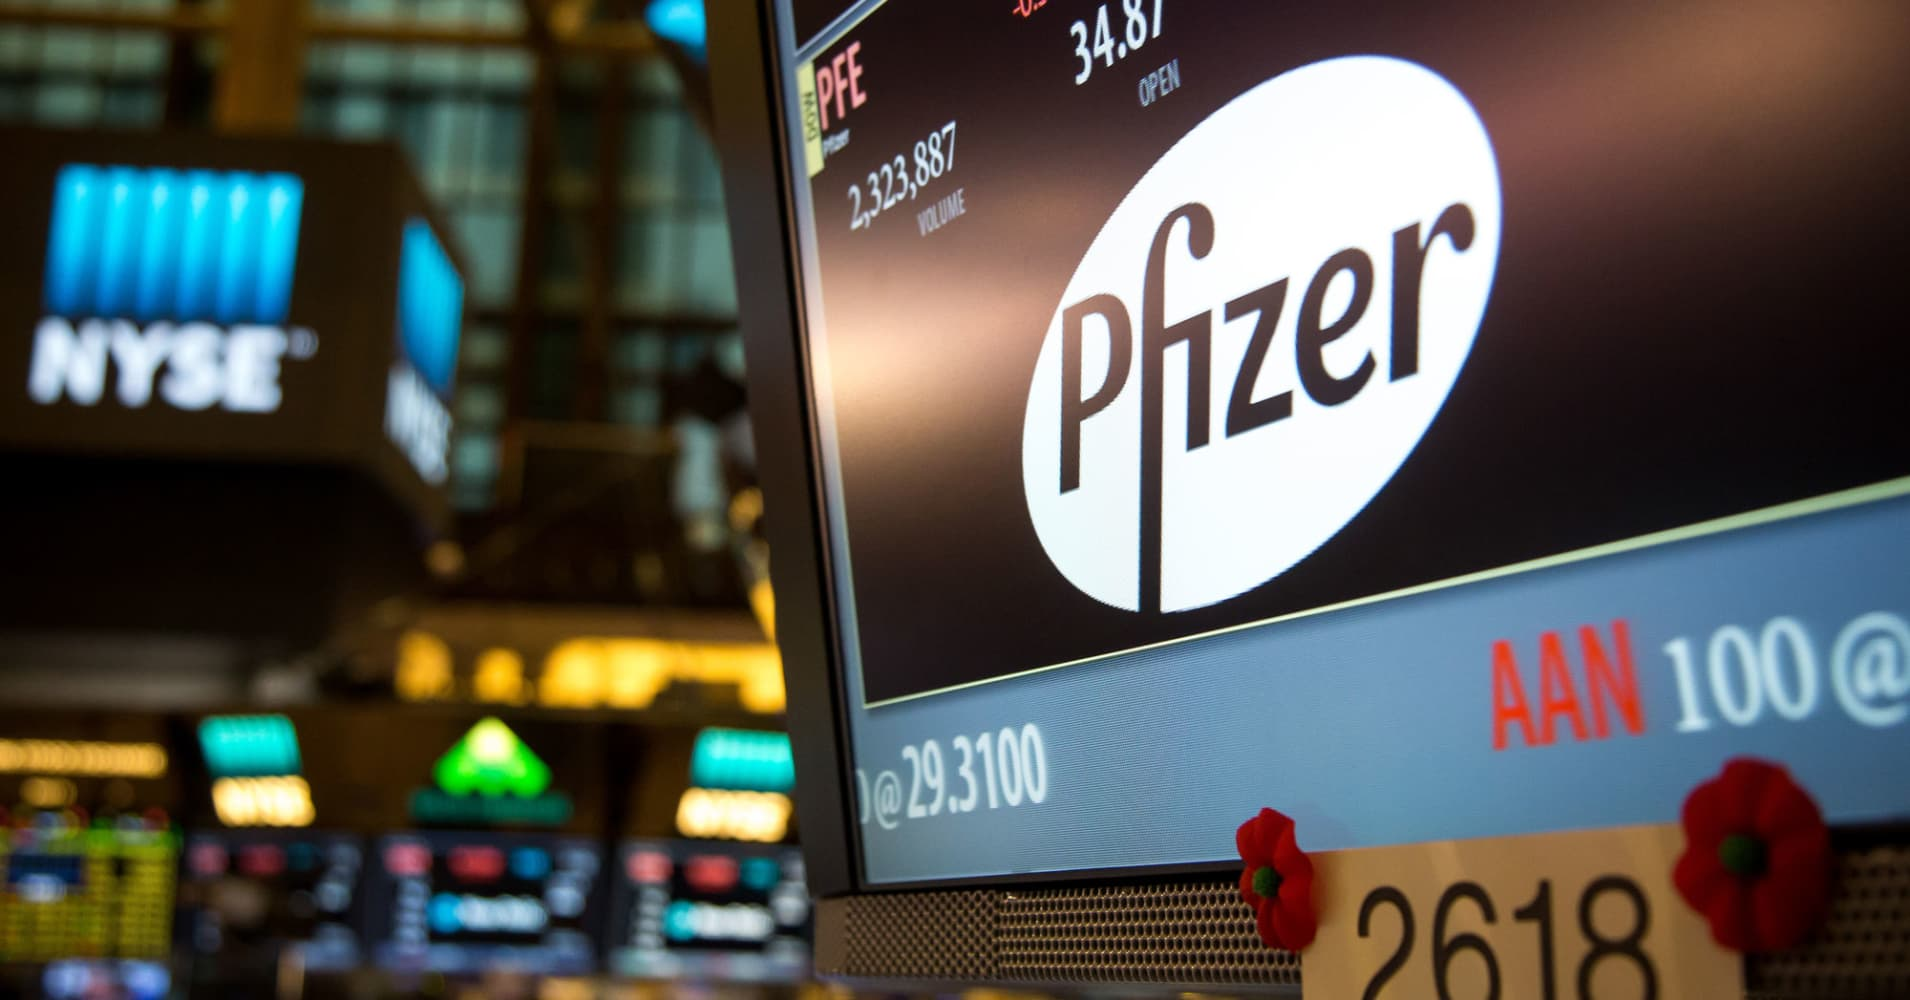 Dow stocks Pfizer and UnitedHealth could be safety plays amid market volatility